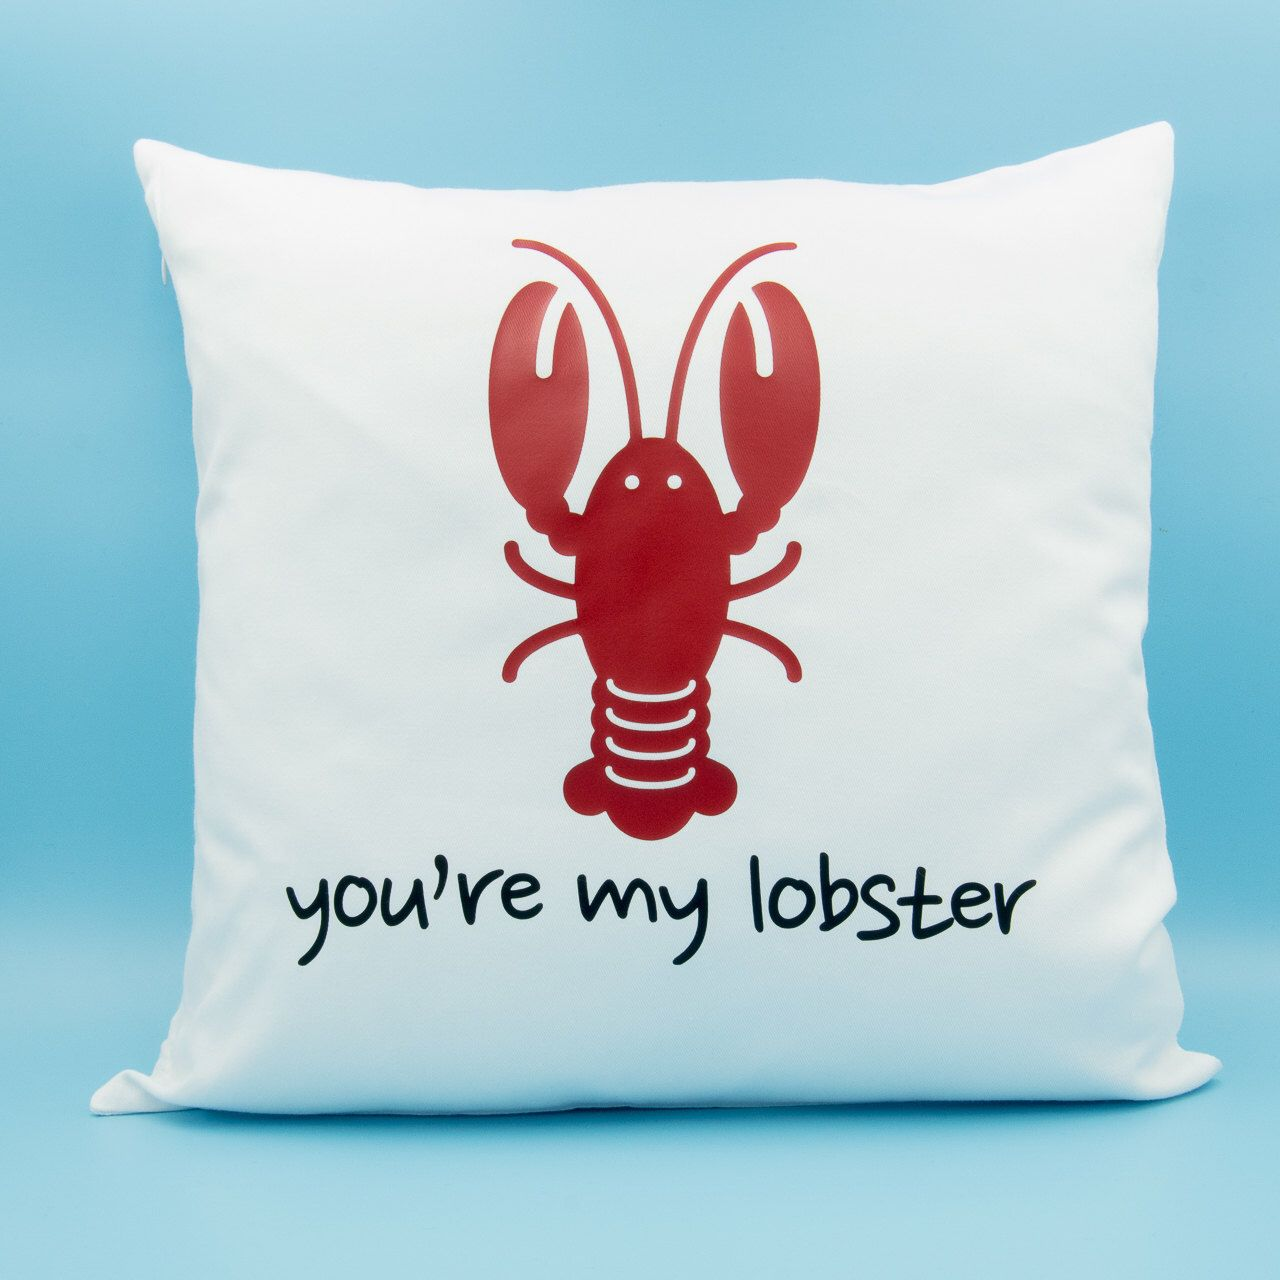 You're My Lobster White Twill Throw Pillow 16x16 Friends